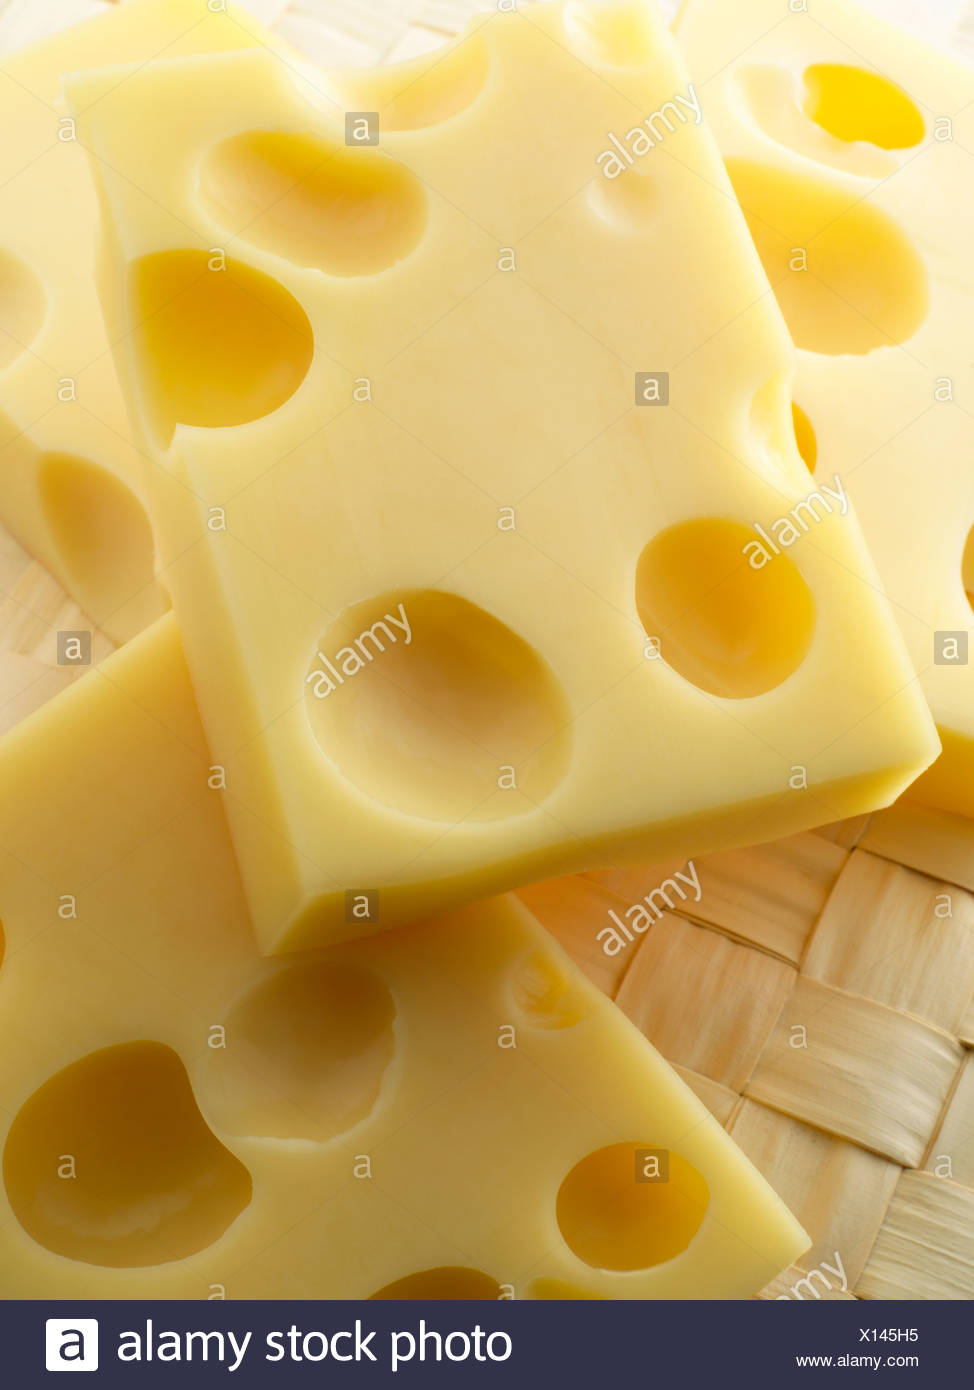 Slices of cheese - Stock Image